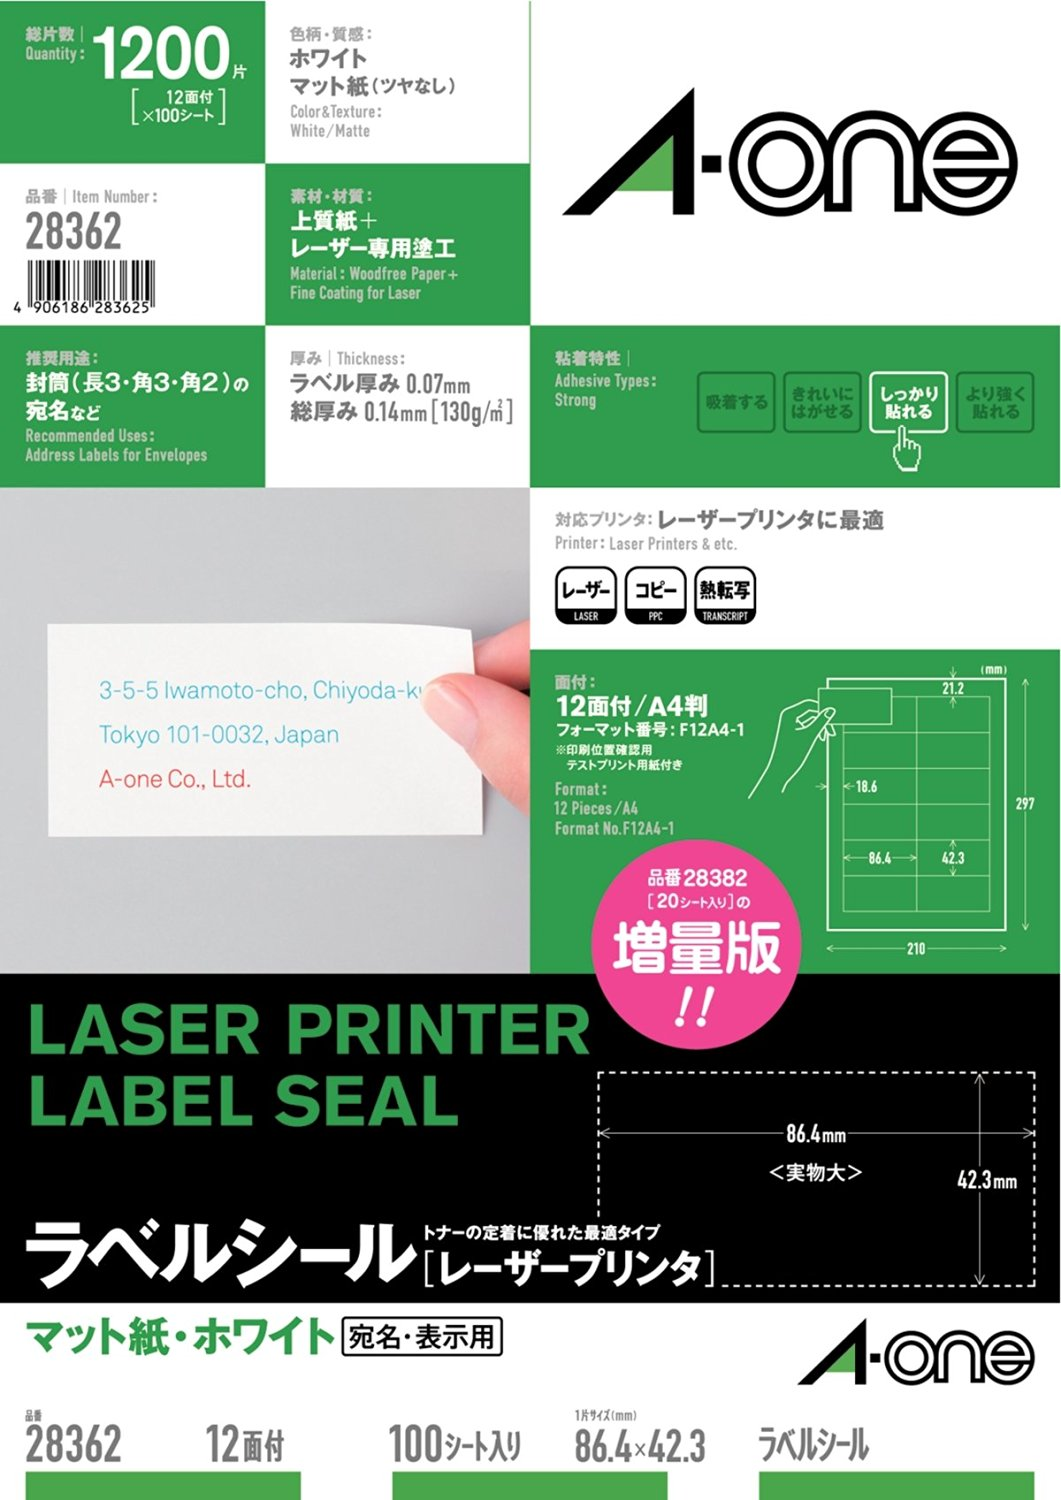 -One (A-one) label seal [laser printer] Matt White paper 100 sheet A4 12 side margin with four sides (1,200 pieces) 28362 (japan import)